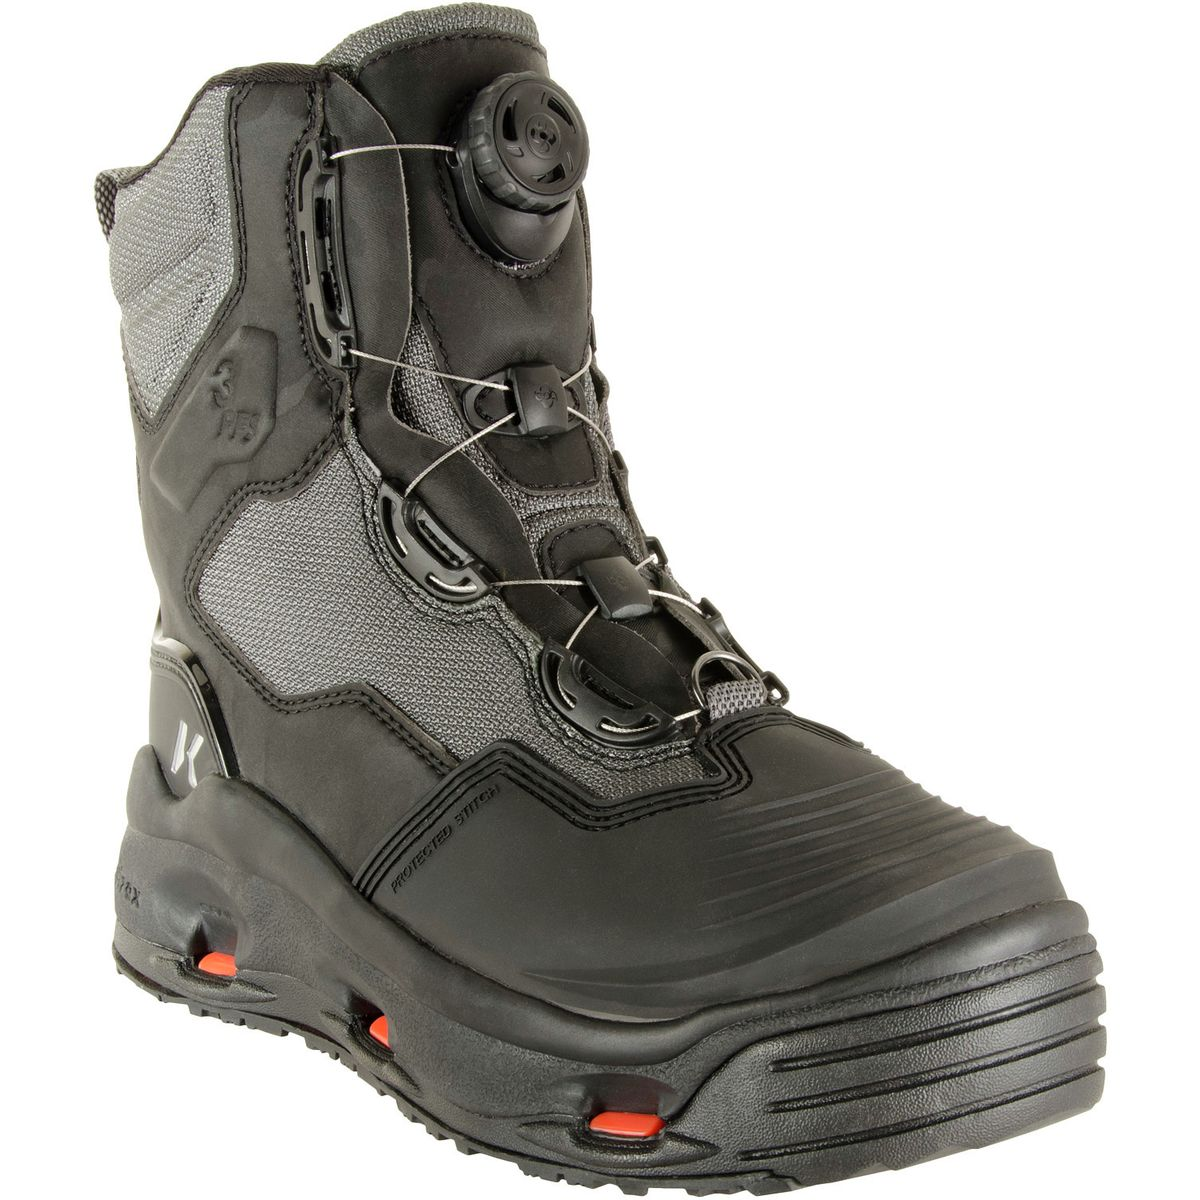 Studded// Kling On Rubber Korkers Fly Fishing Darkhorse Wading Boot